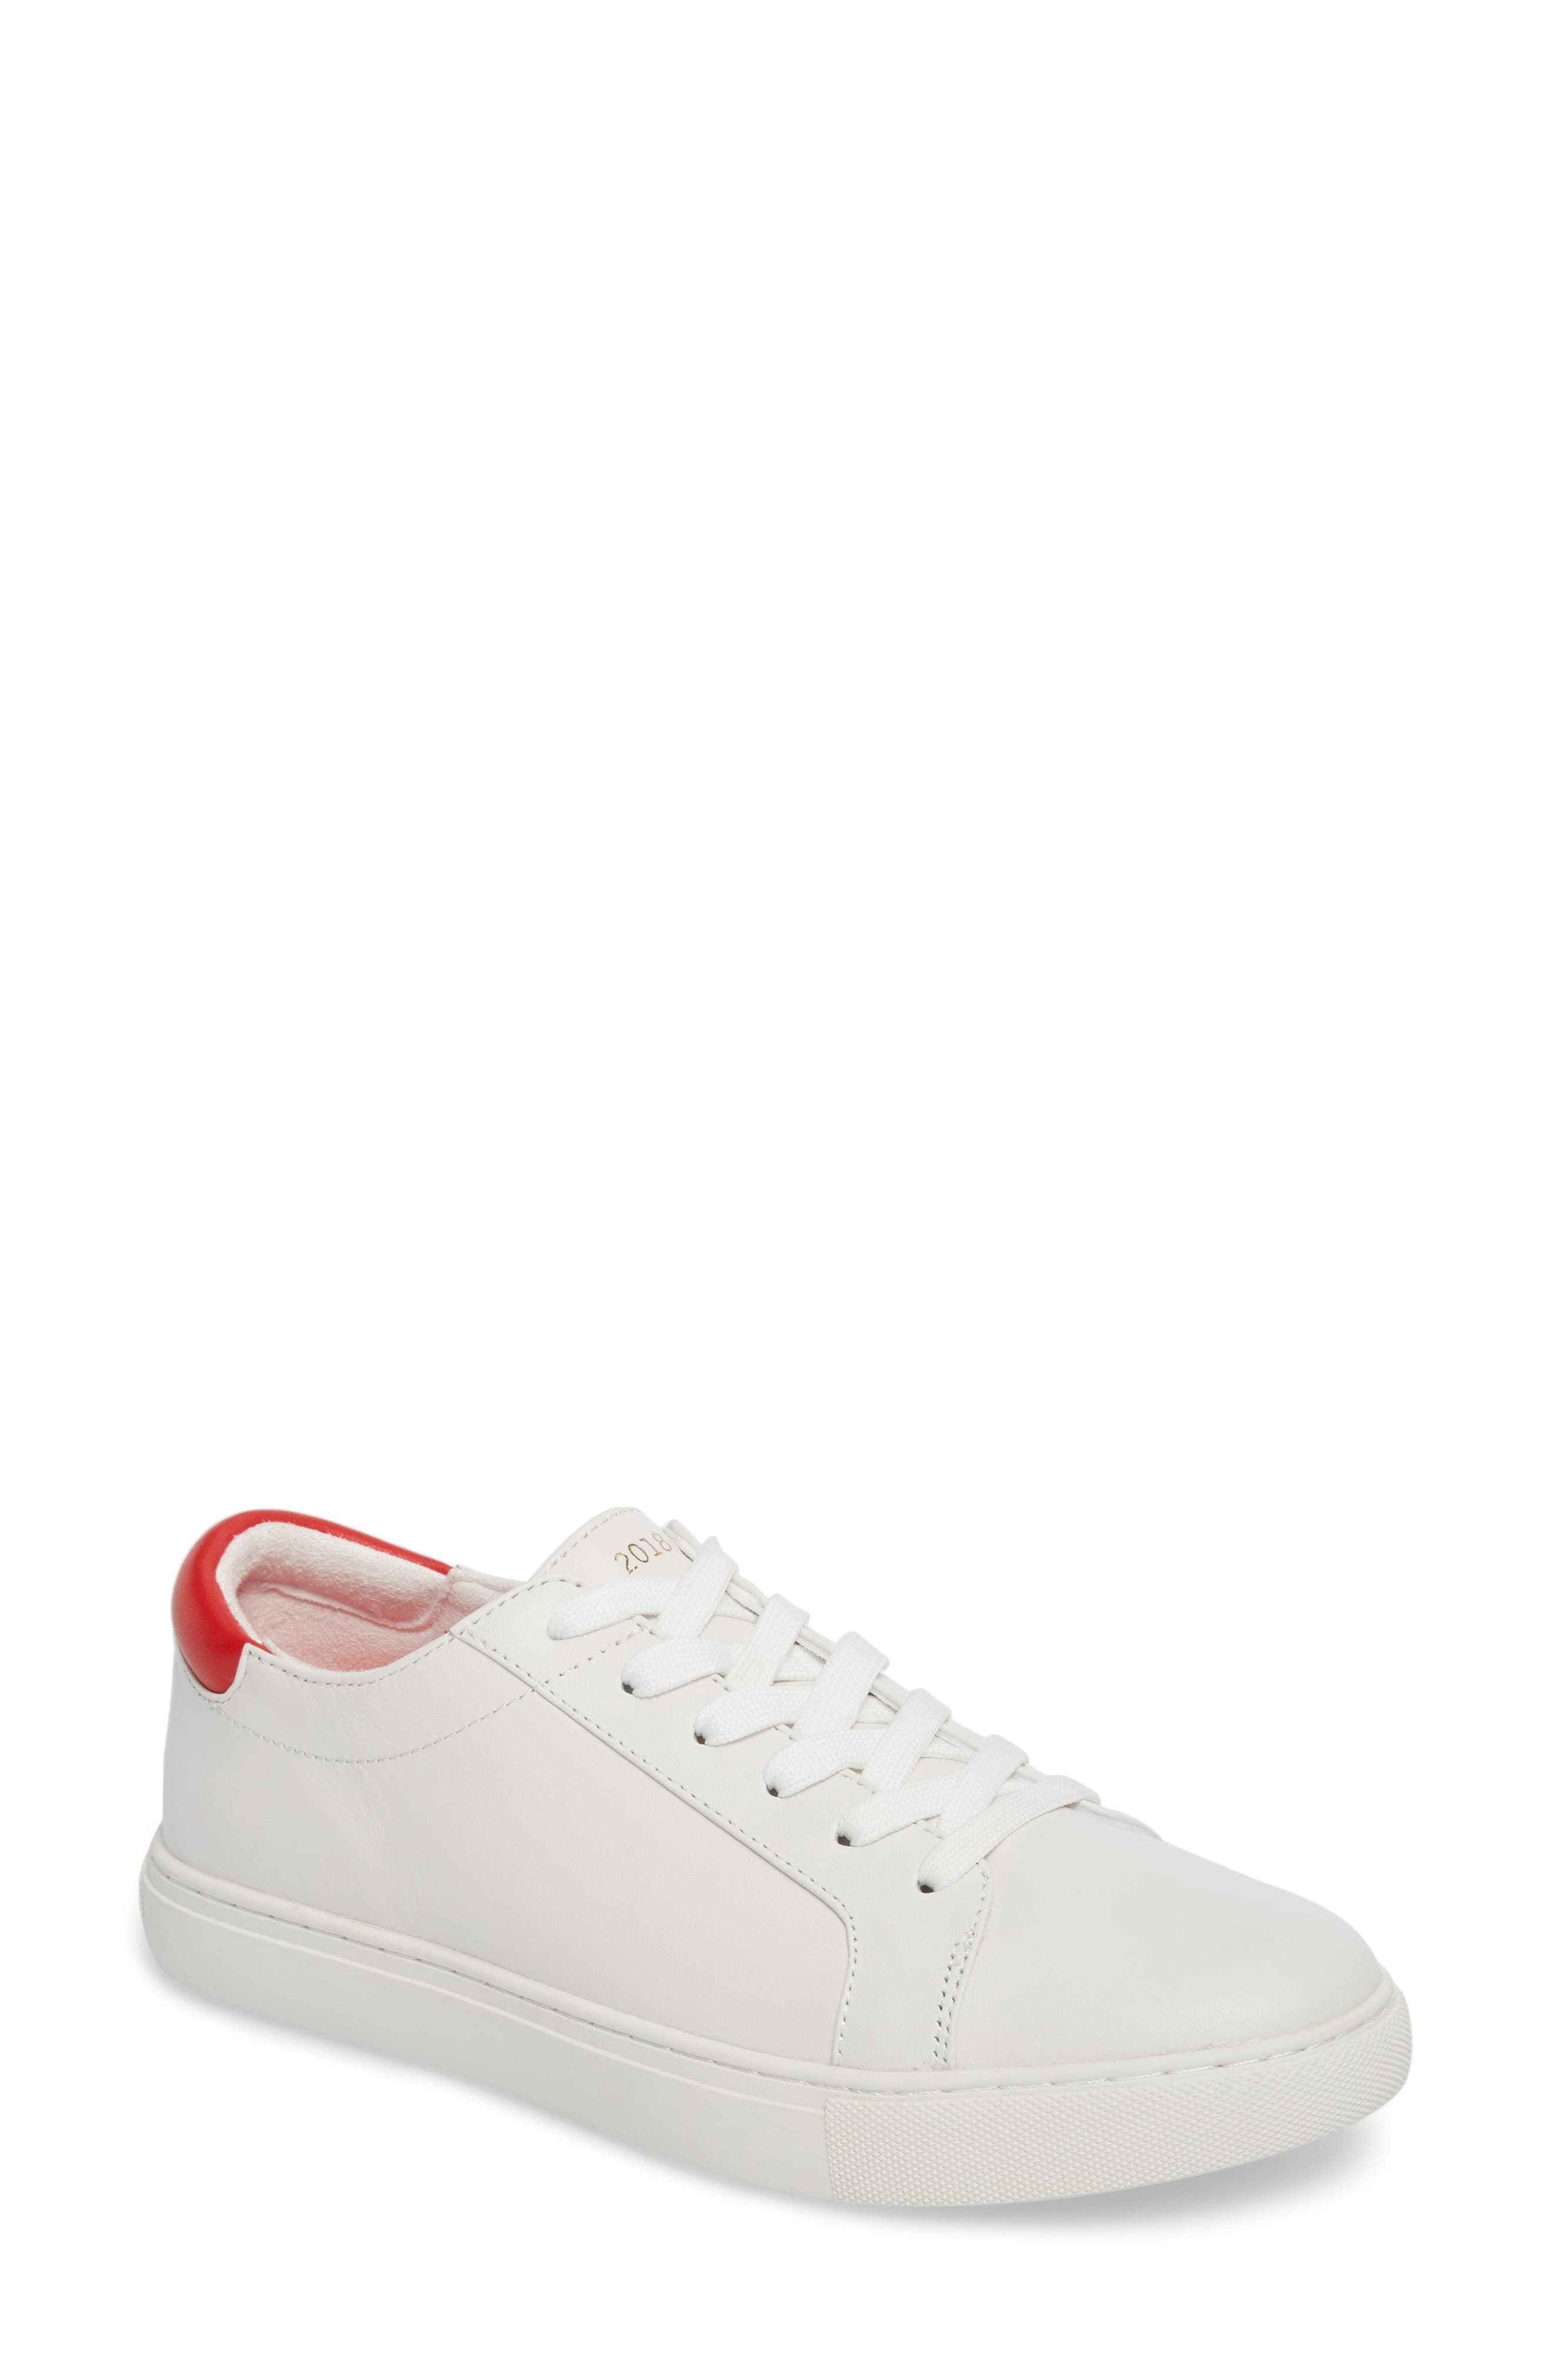 Cam Low Top Sneaker,                         Main,                         color, White Leather